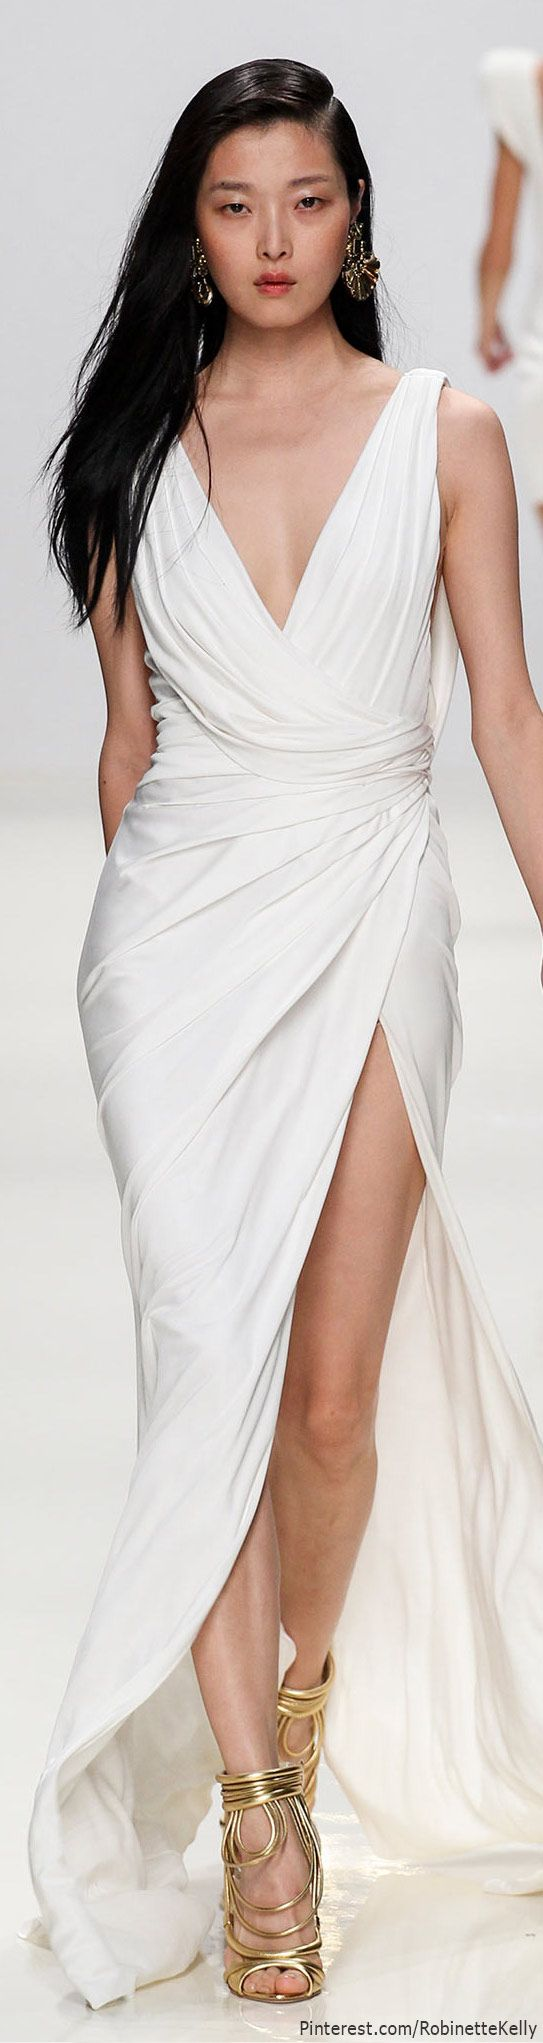 "Valentin Yudashkin | S/S 2014 ♡♥♡♥ Thanks, Pinterest Pinners, for stopping by, viewing, re-pinning, & following my boards. Have a beautiful day! ^..^ and ""Feel free to share on Pinterest ^..^  #topfashion #fashionandclothingblog #fashionupdates *•.¸♡¸.•**•.¸ ┊  ┊ ┊ ┊  ┊  ┊"